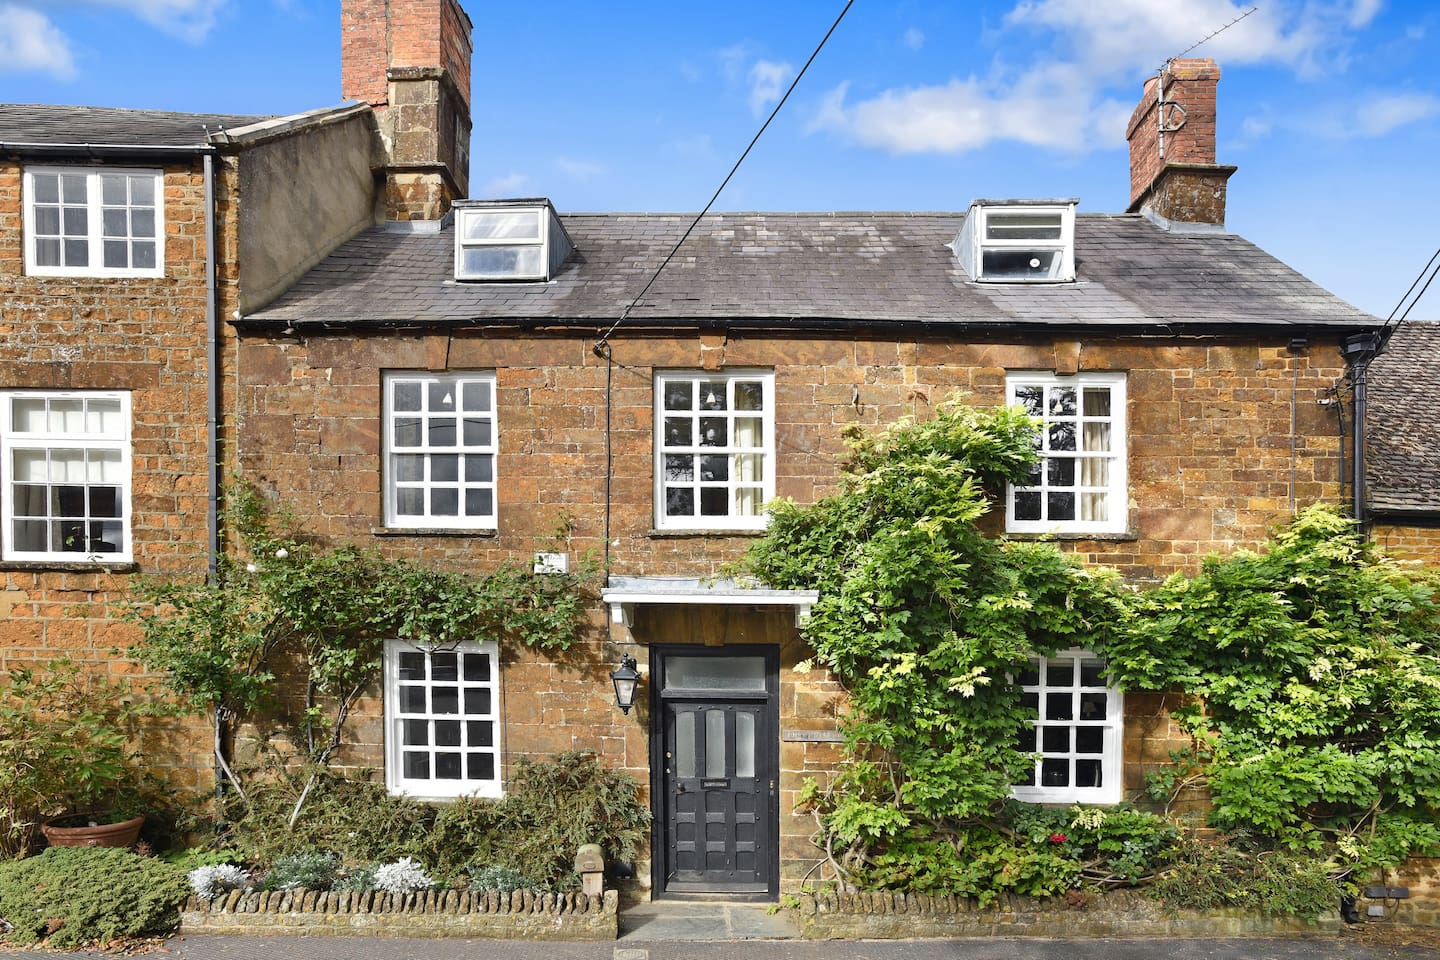 At The Heart Of The Village of Deddington this unique property offers the opportunity to stay in luxury accommodation within a short distance of Oxford,  Great Tew,  Blenheim, Warwick, Stowe, Silverstone, Buckingham